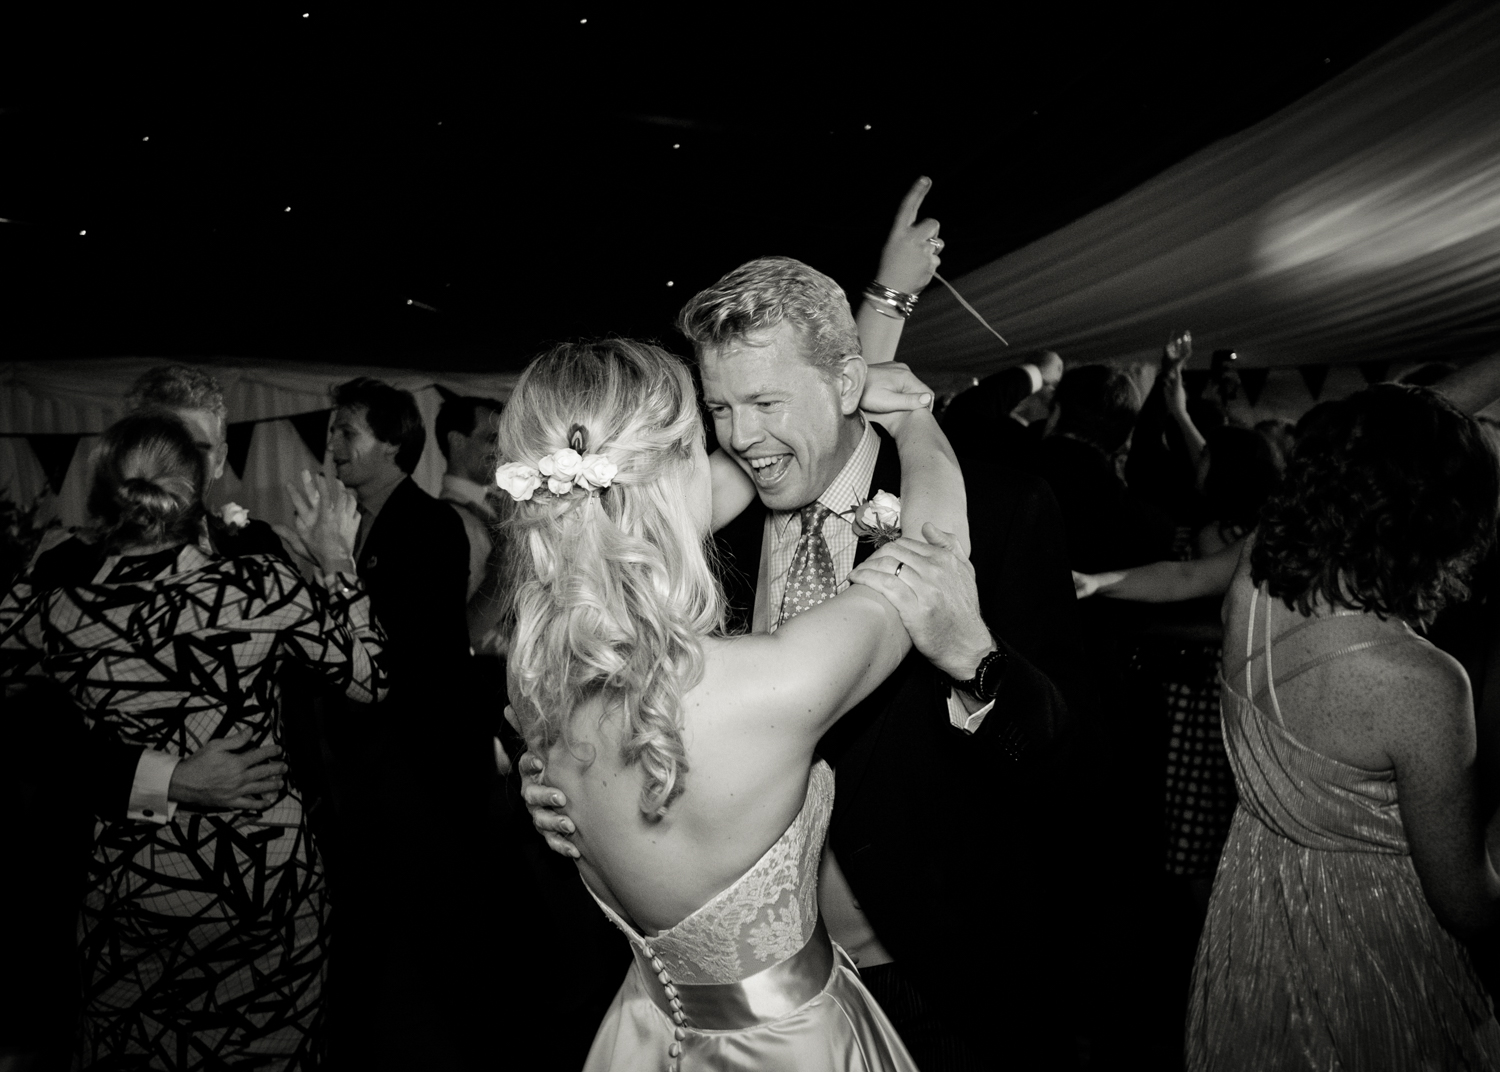 Wedding Photographer Rupert Marlow photograph of 1st dance